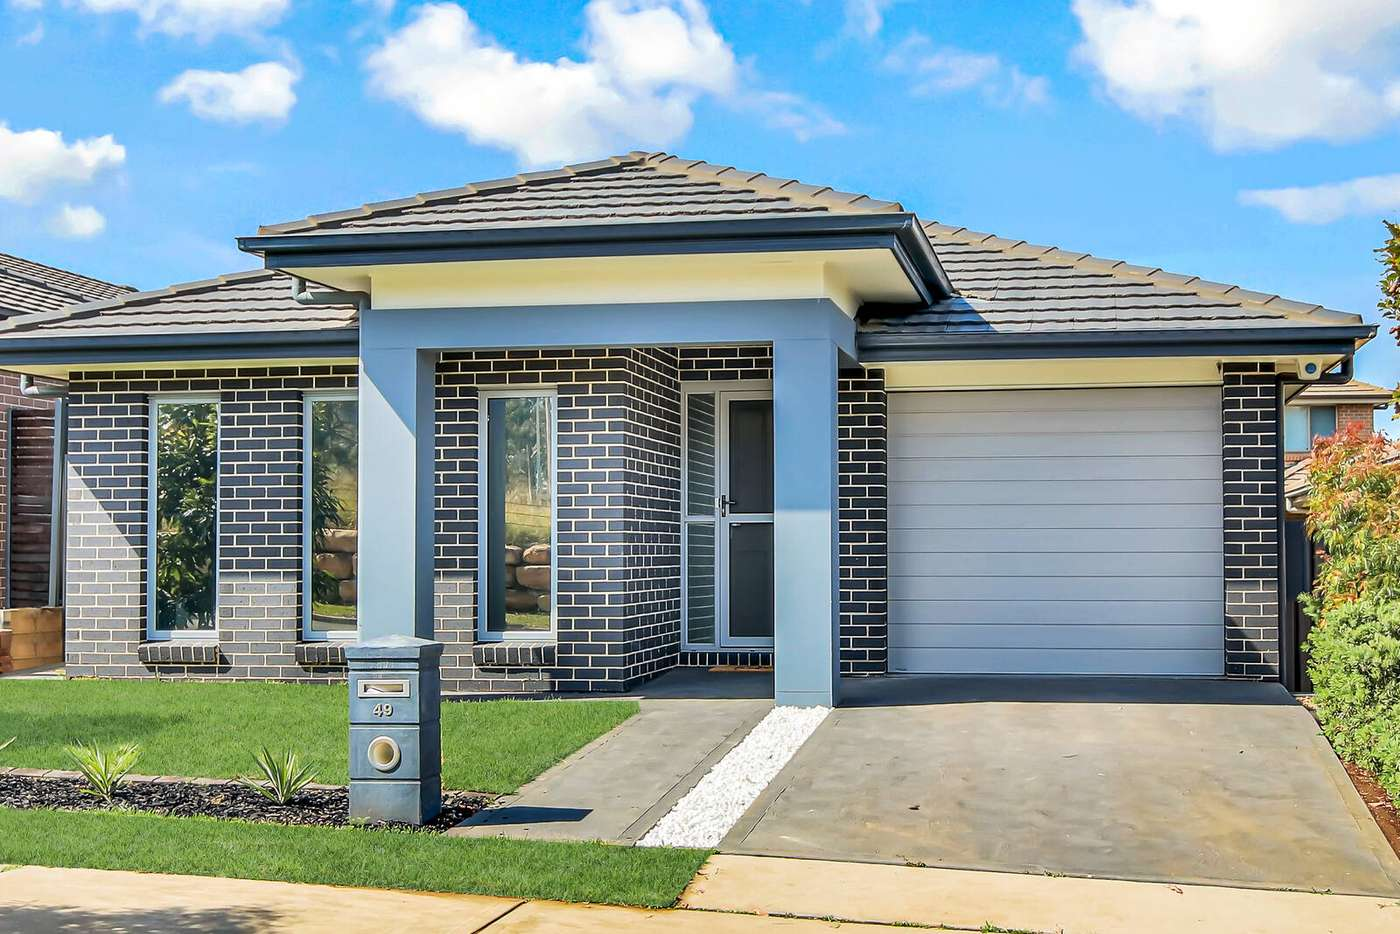 Main view of Homely house listing, 49 Portsmouth Circuit, Jordan Springs NSW 2747